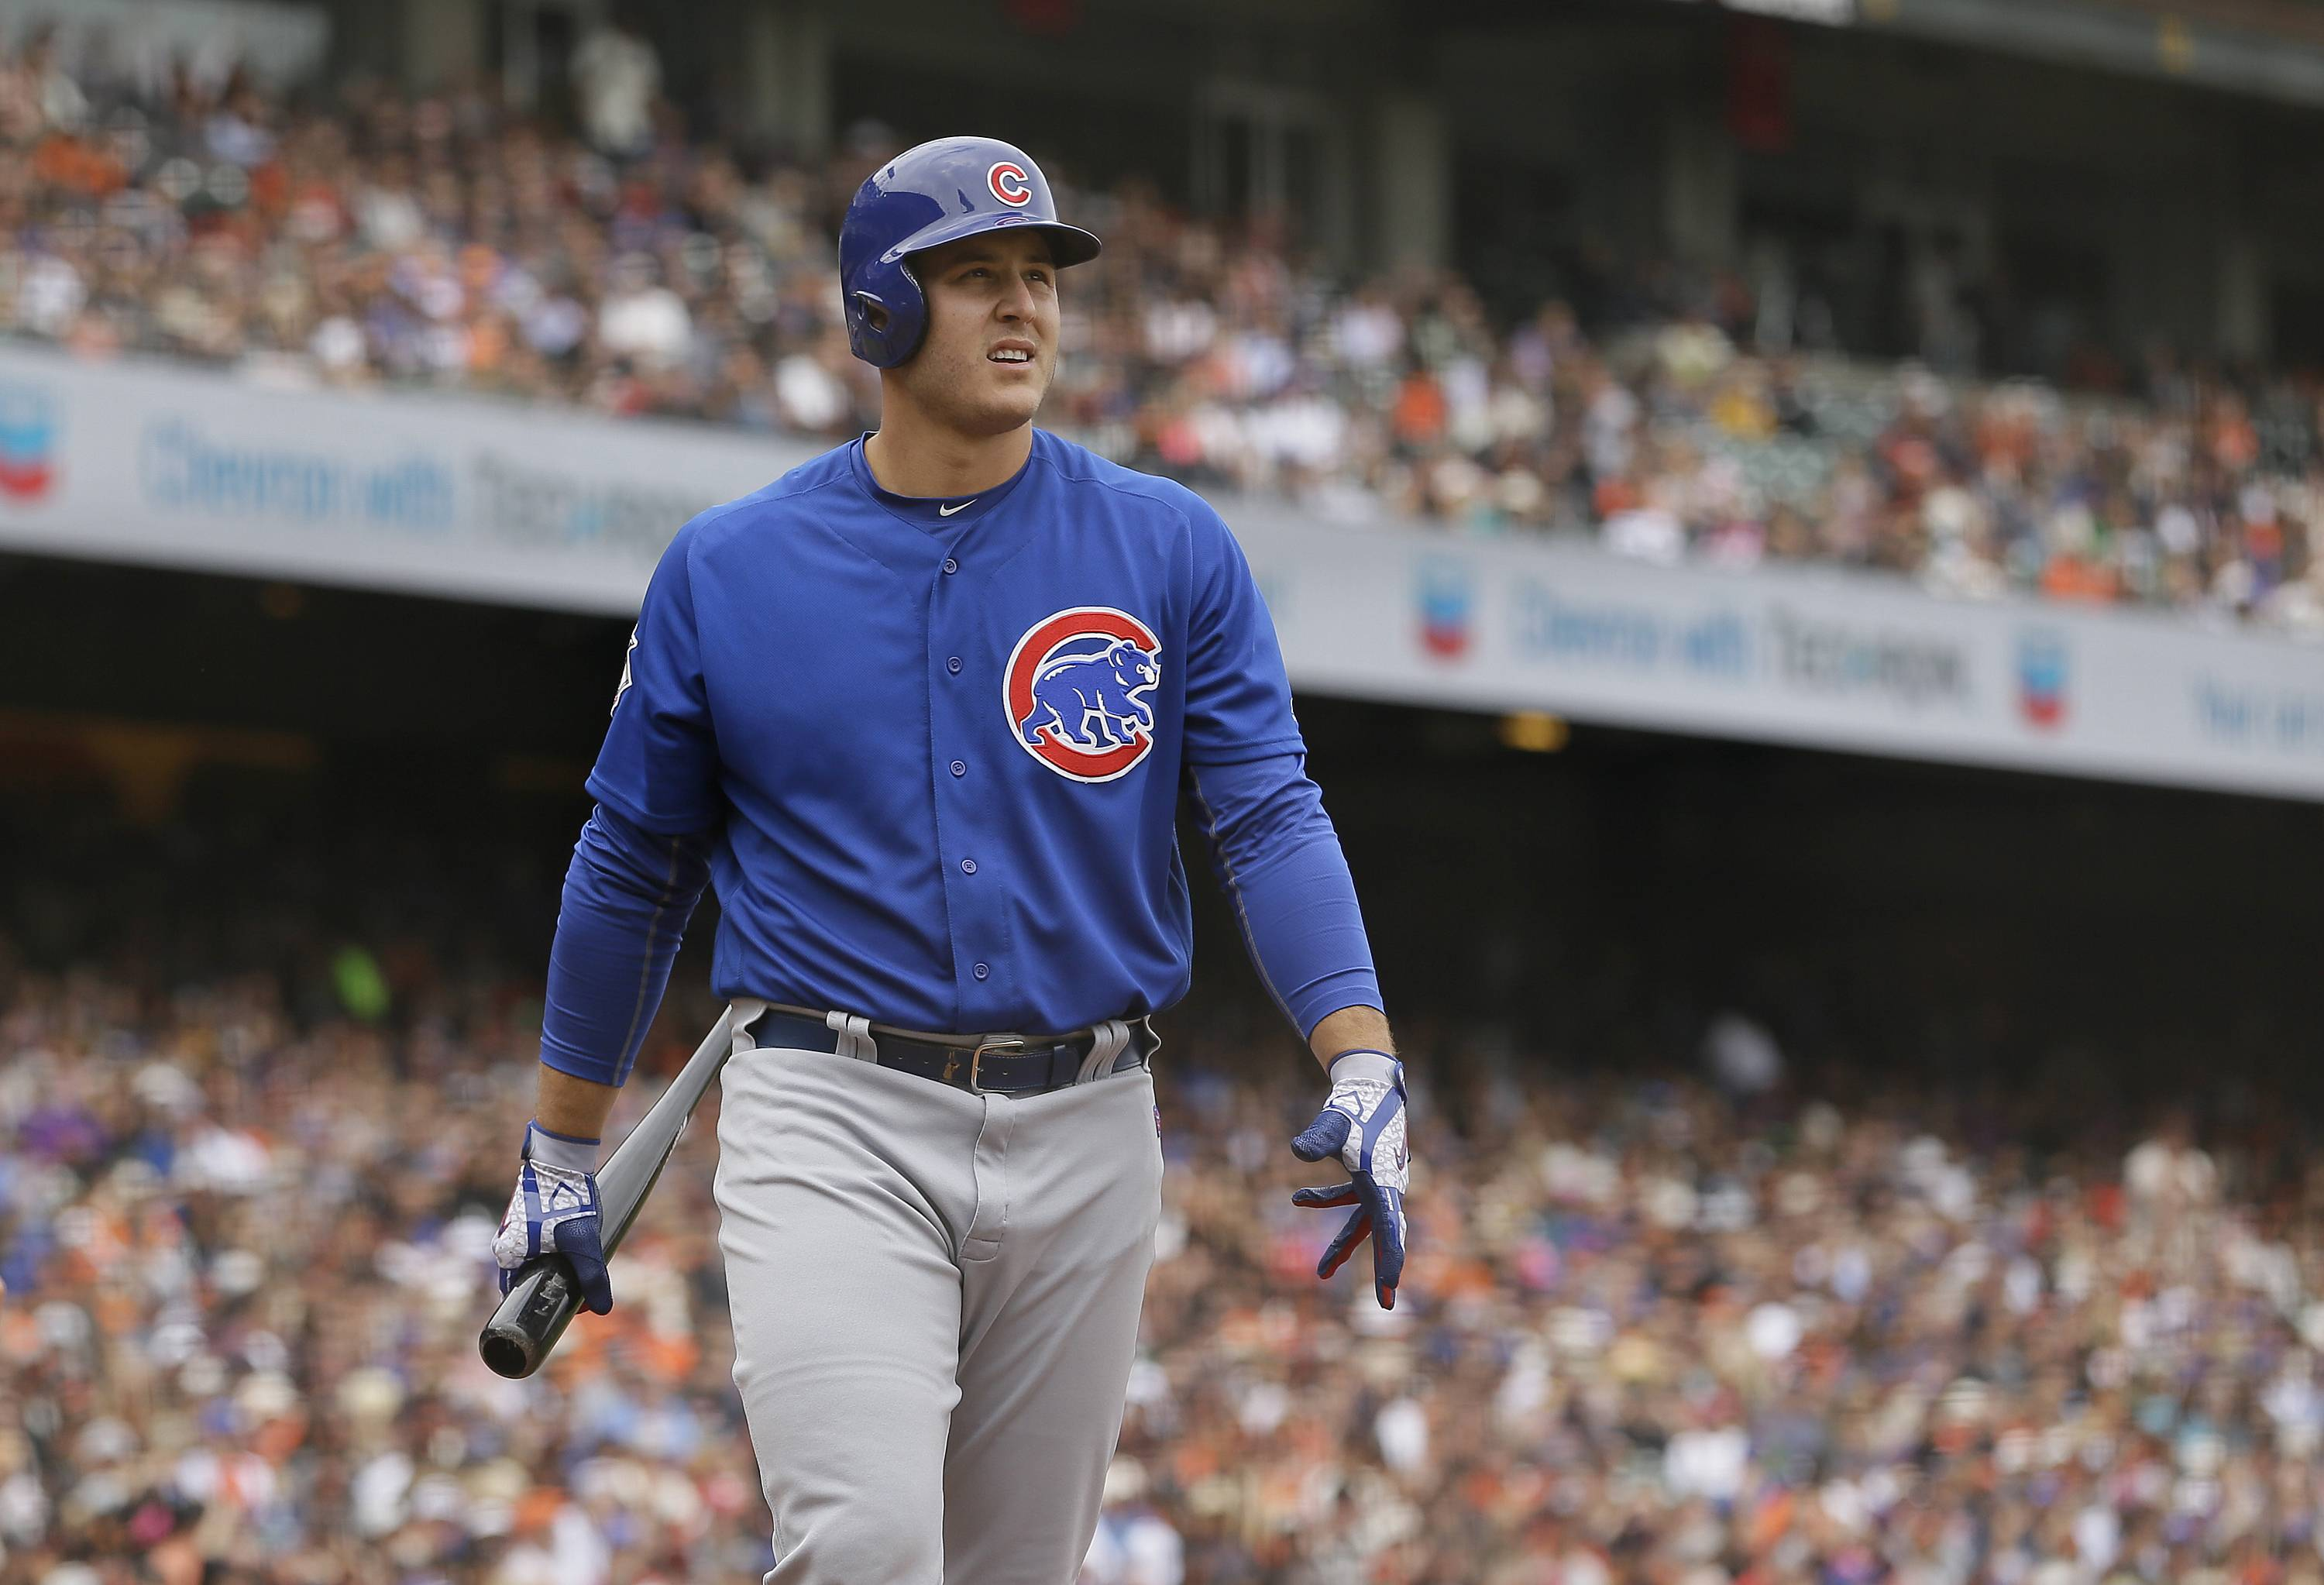 Chicago Cubs pinch hitter Anthony Rizzo walks back to the dugout after striking out swinging against San Francisco Giants relief pitcher Hunter Strickland in the eighth inning of a baseball game Wednesday, Aug. 9, 2017, in San Francisco. San Francisco won the game 3-1. (AP Photo/Eric Risberg)